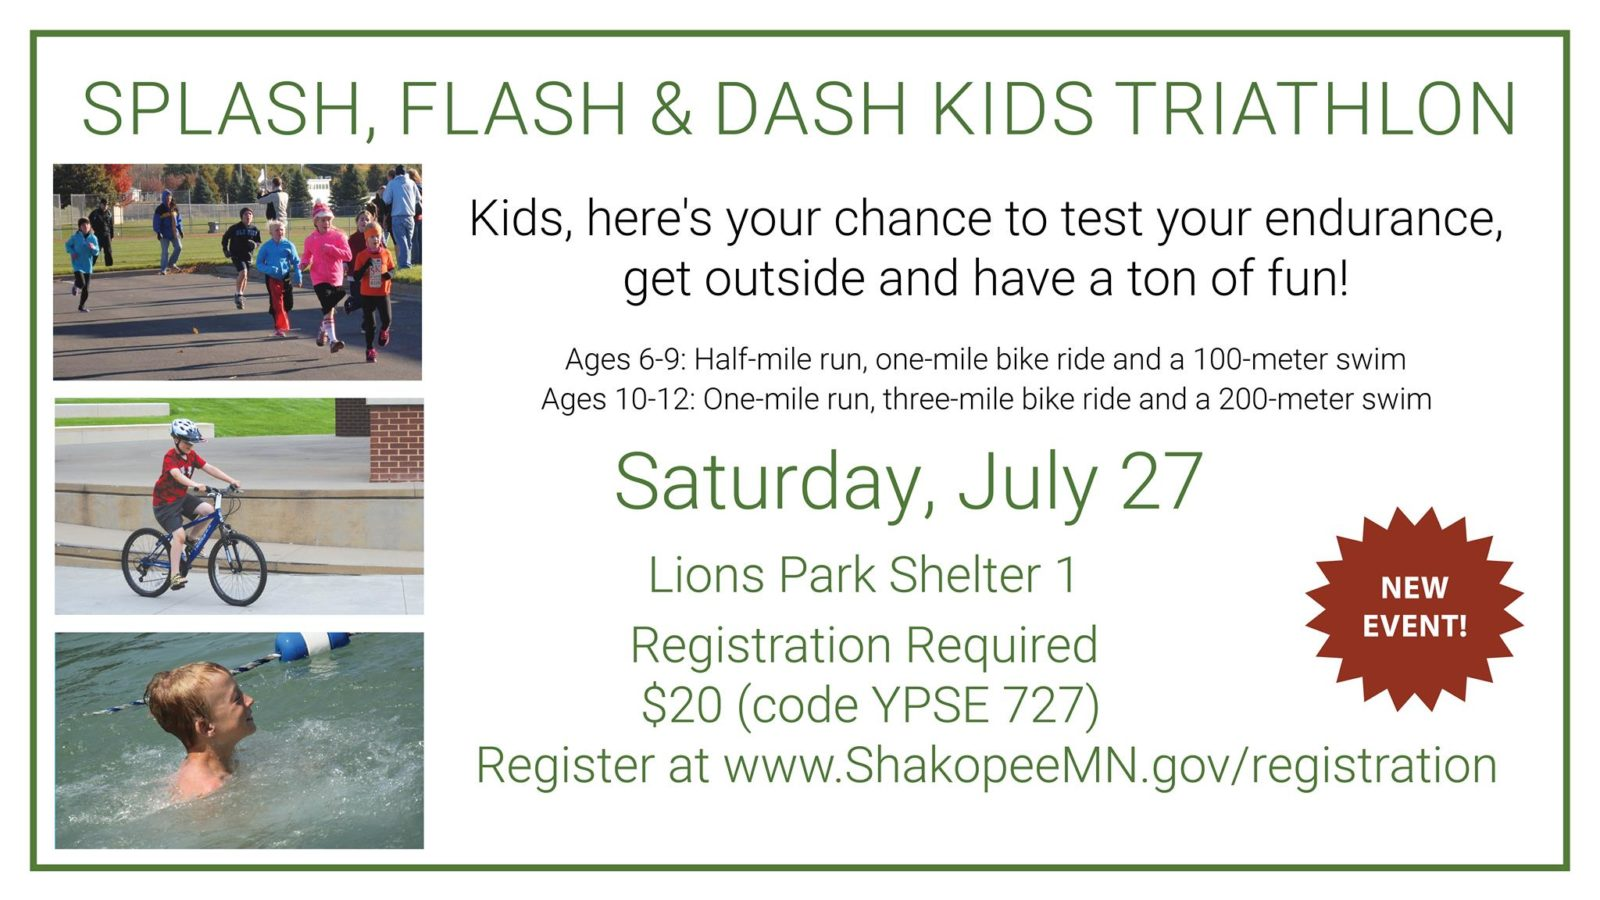 Splash, Flash & Dash Kids Triathlon